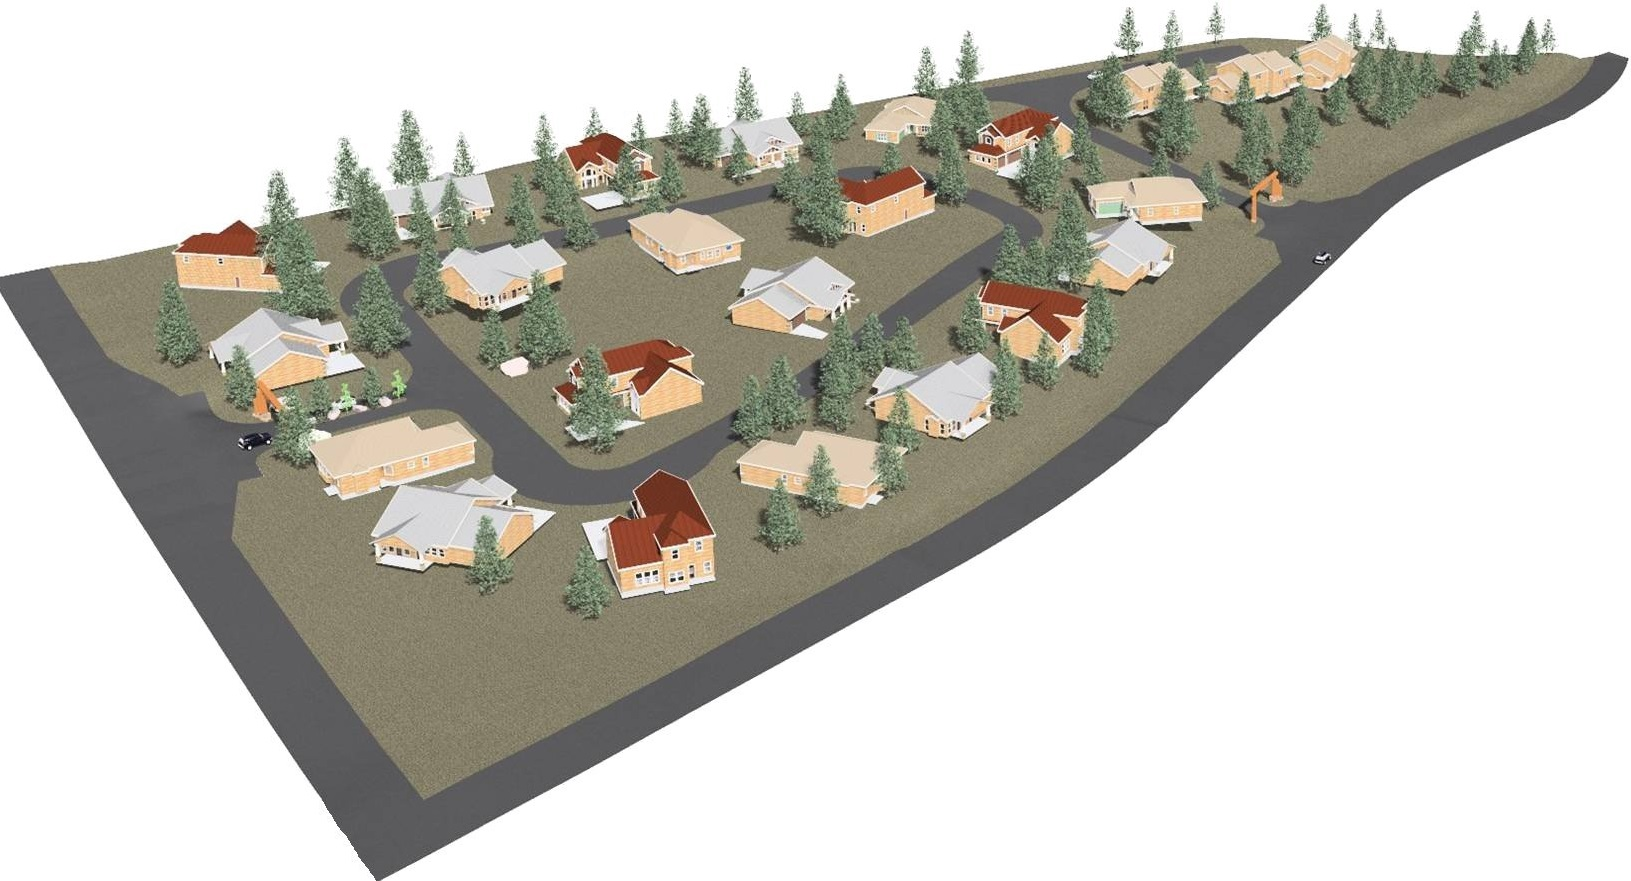 3D Model Rendering of Residential Subdivision